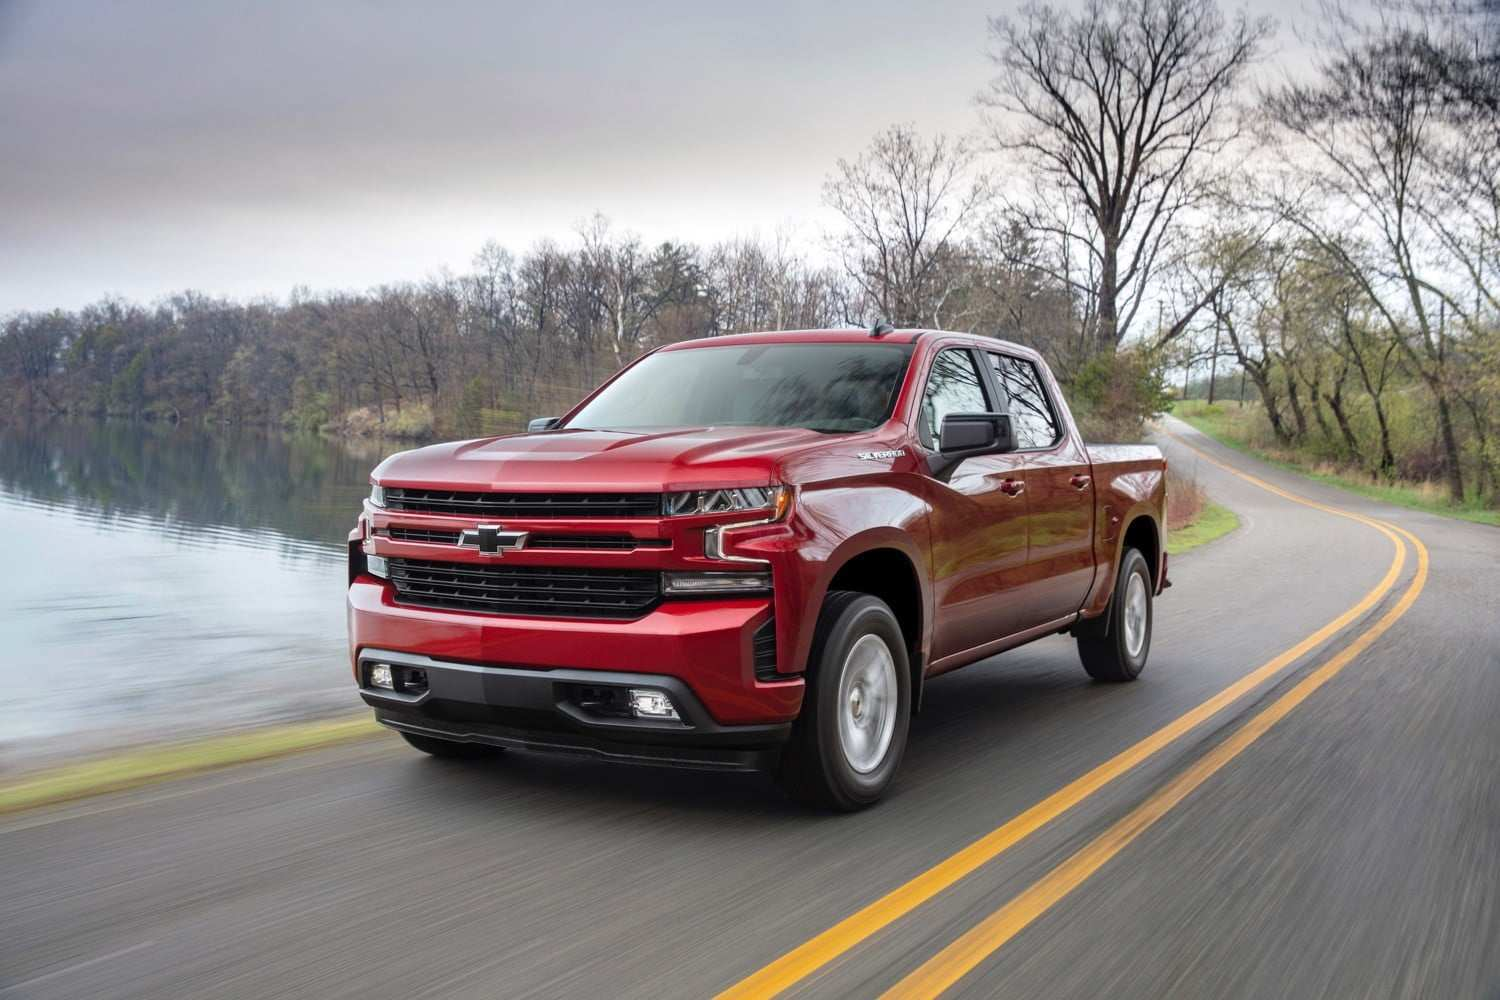 54 All New 2020 Silverado 1500 Diesel Performance and New Engine